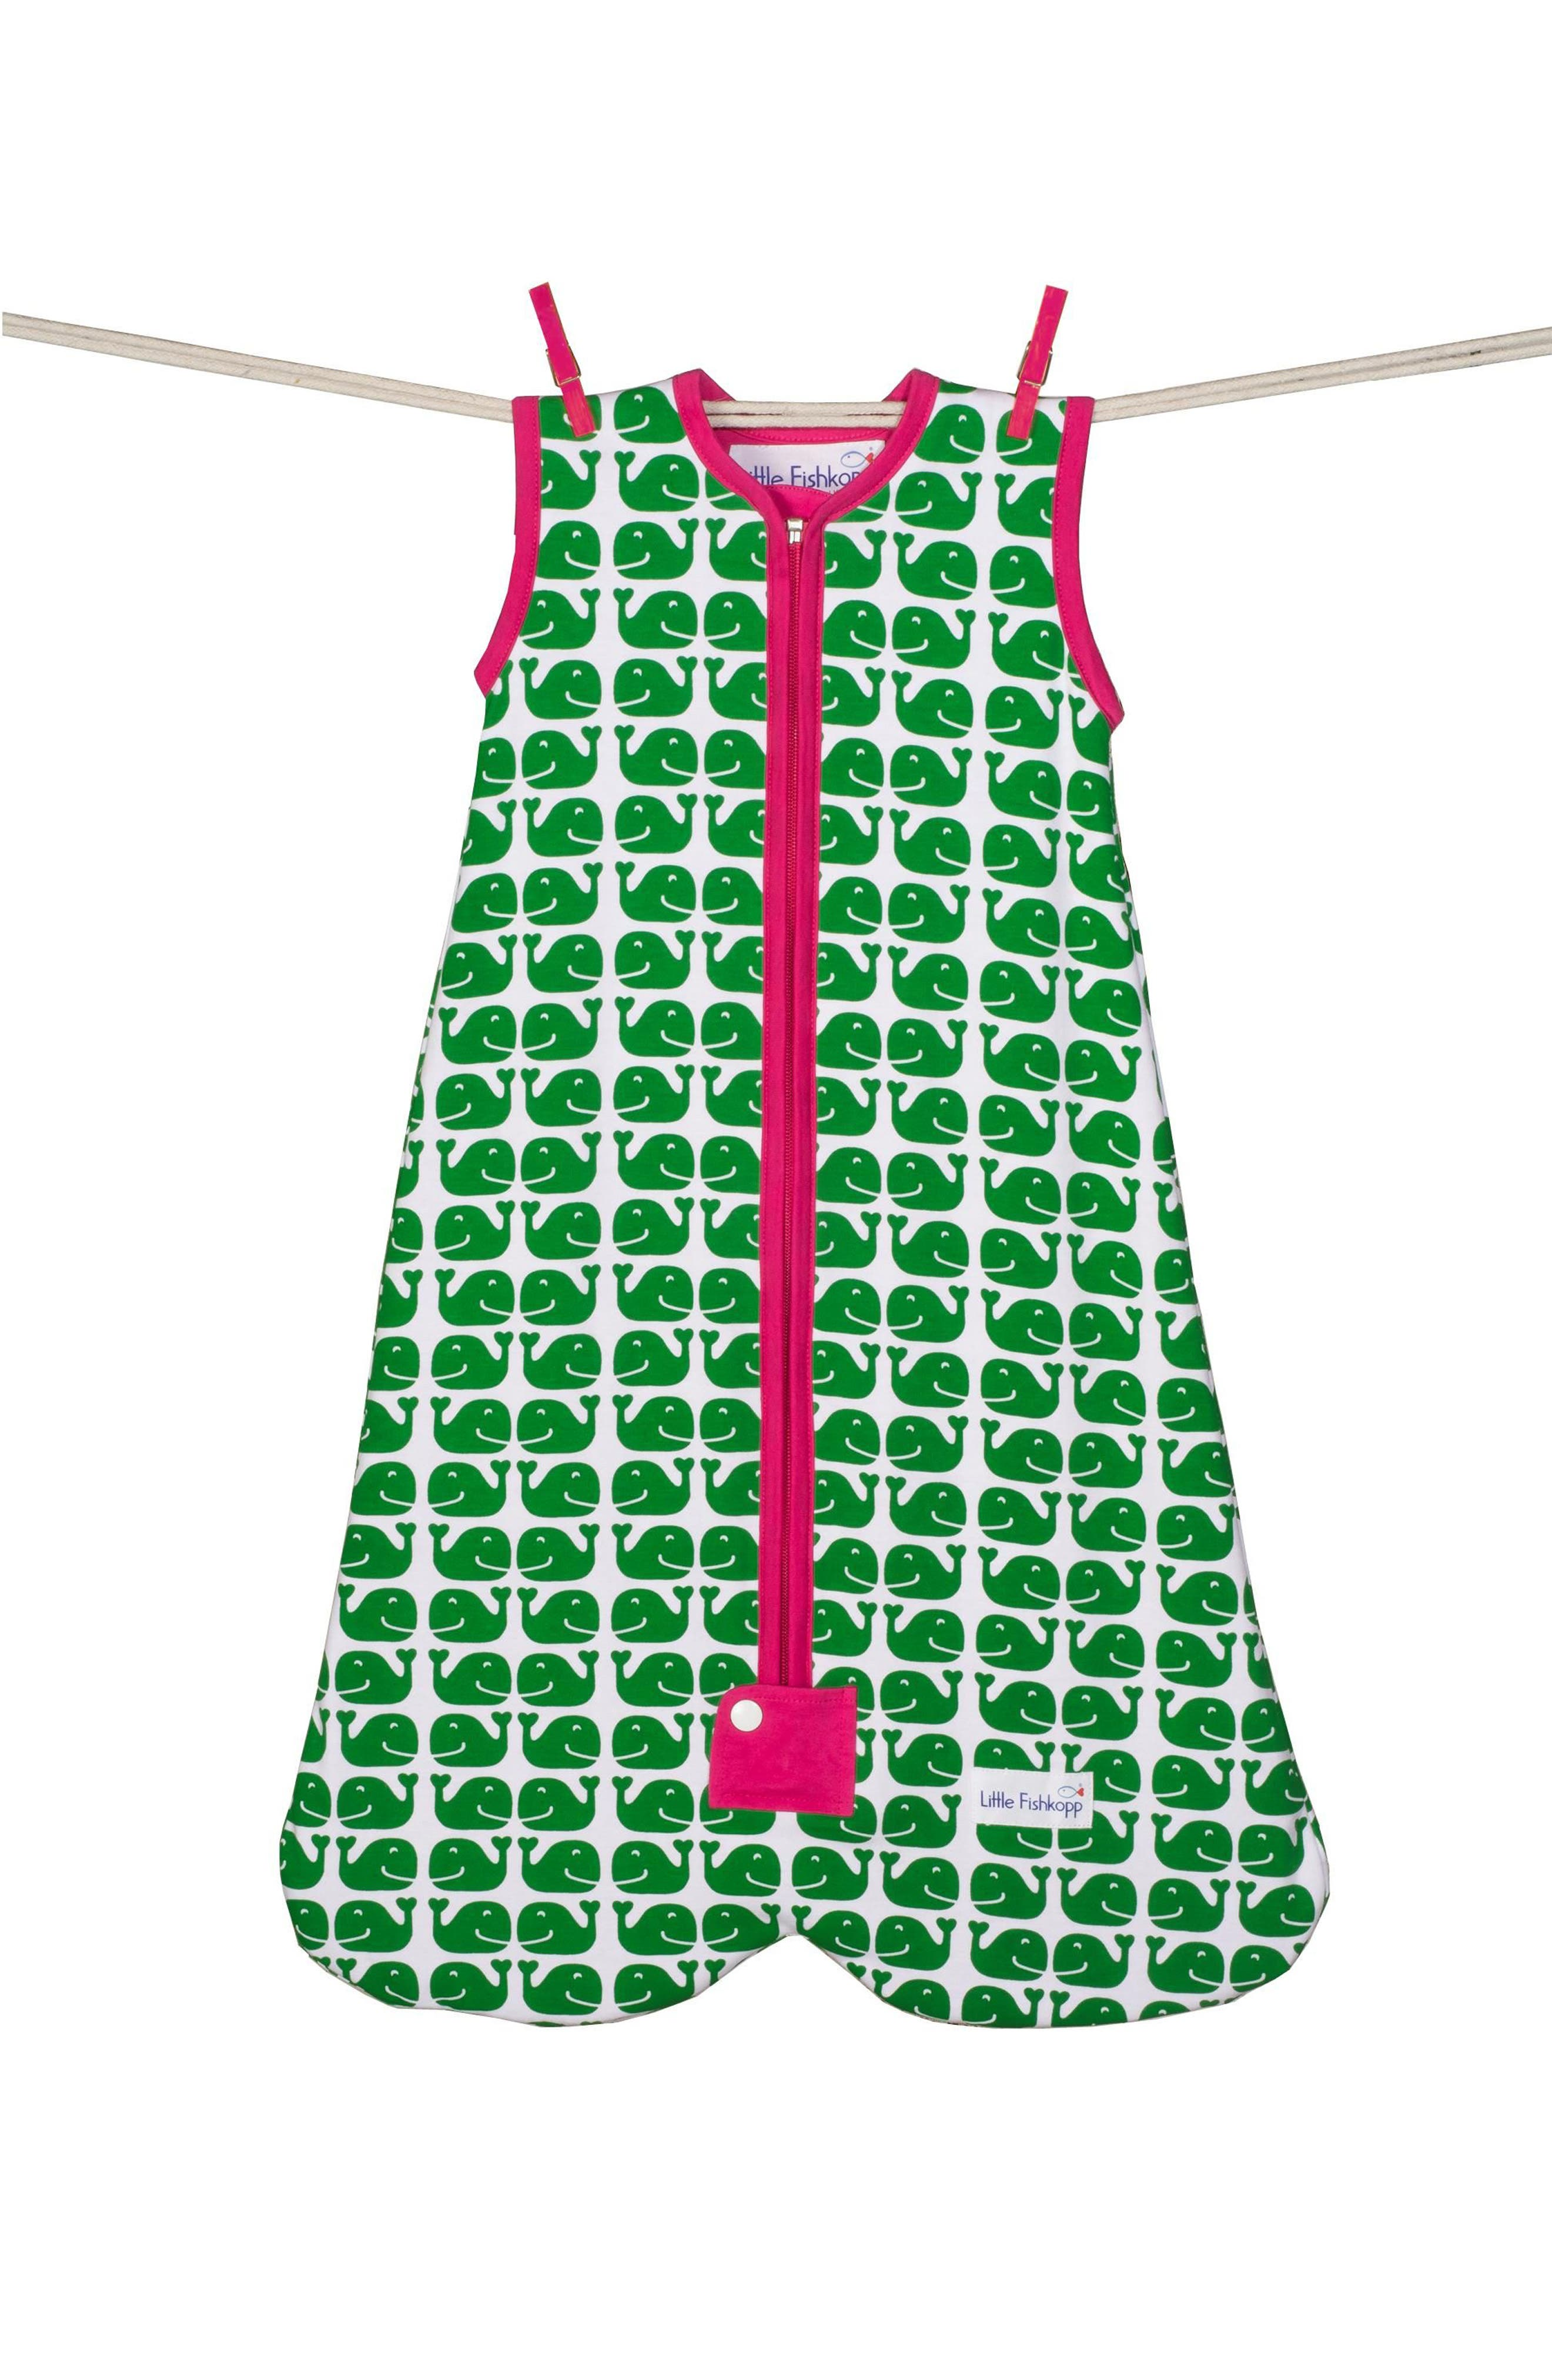 Whales Organic Cotton Wearable Blanket,                         Main,                         color, 300